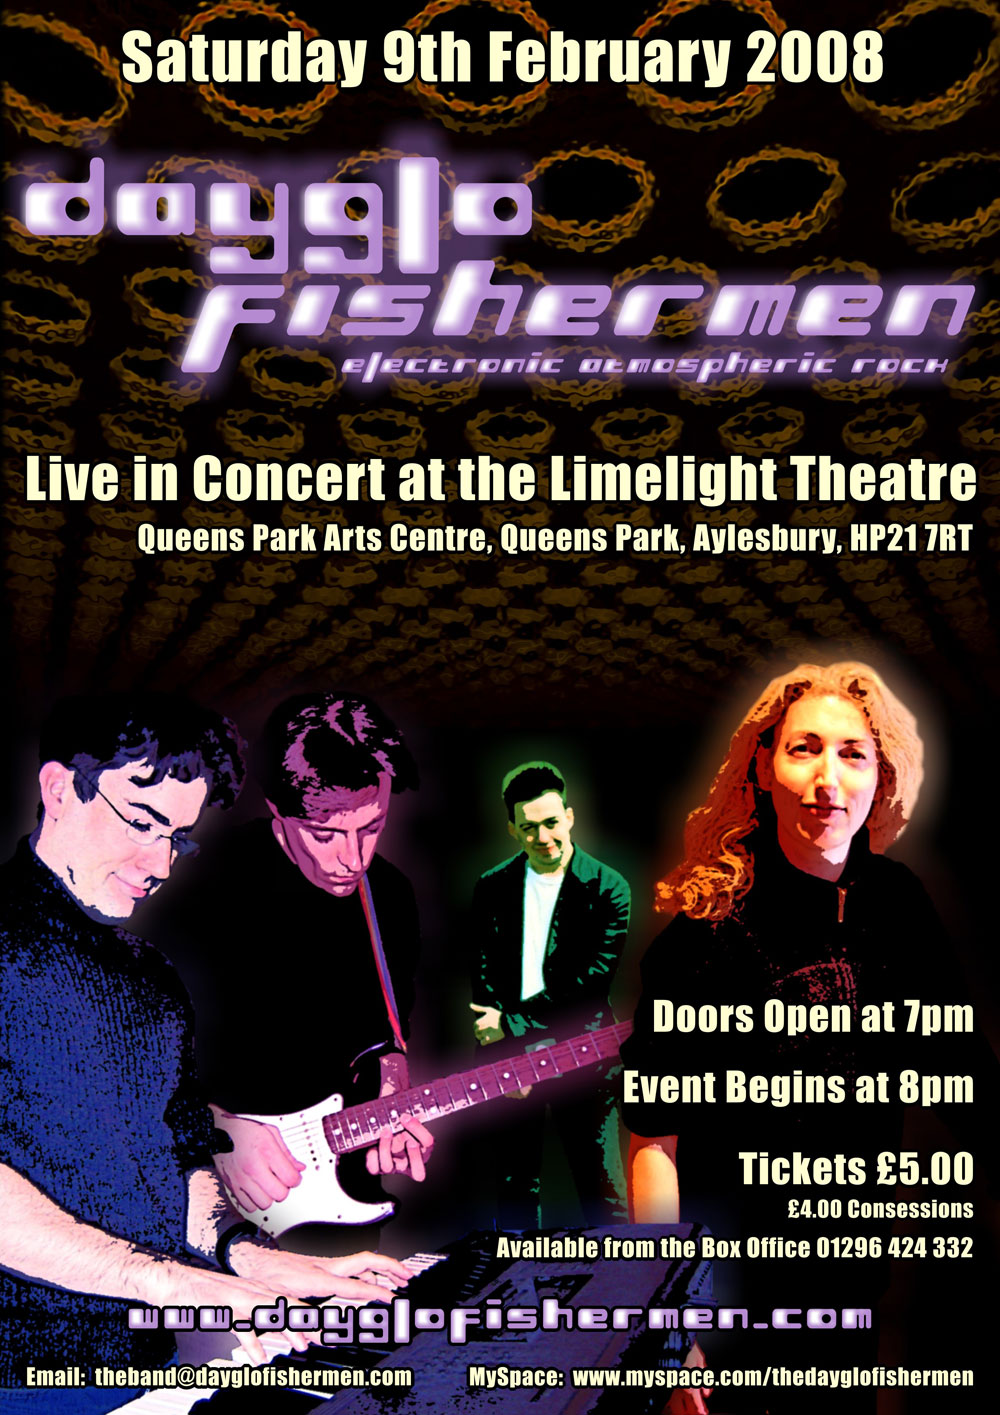 Limelight Theatre concert poster 2008